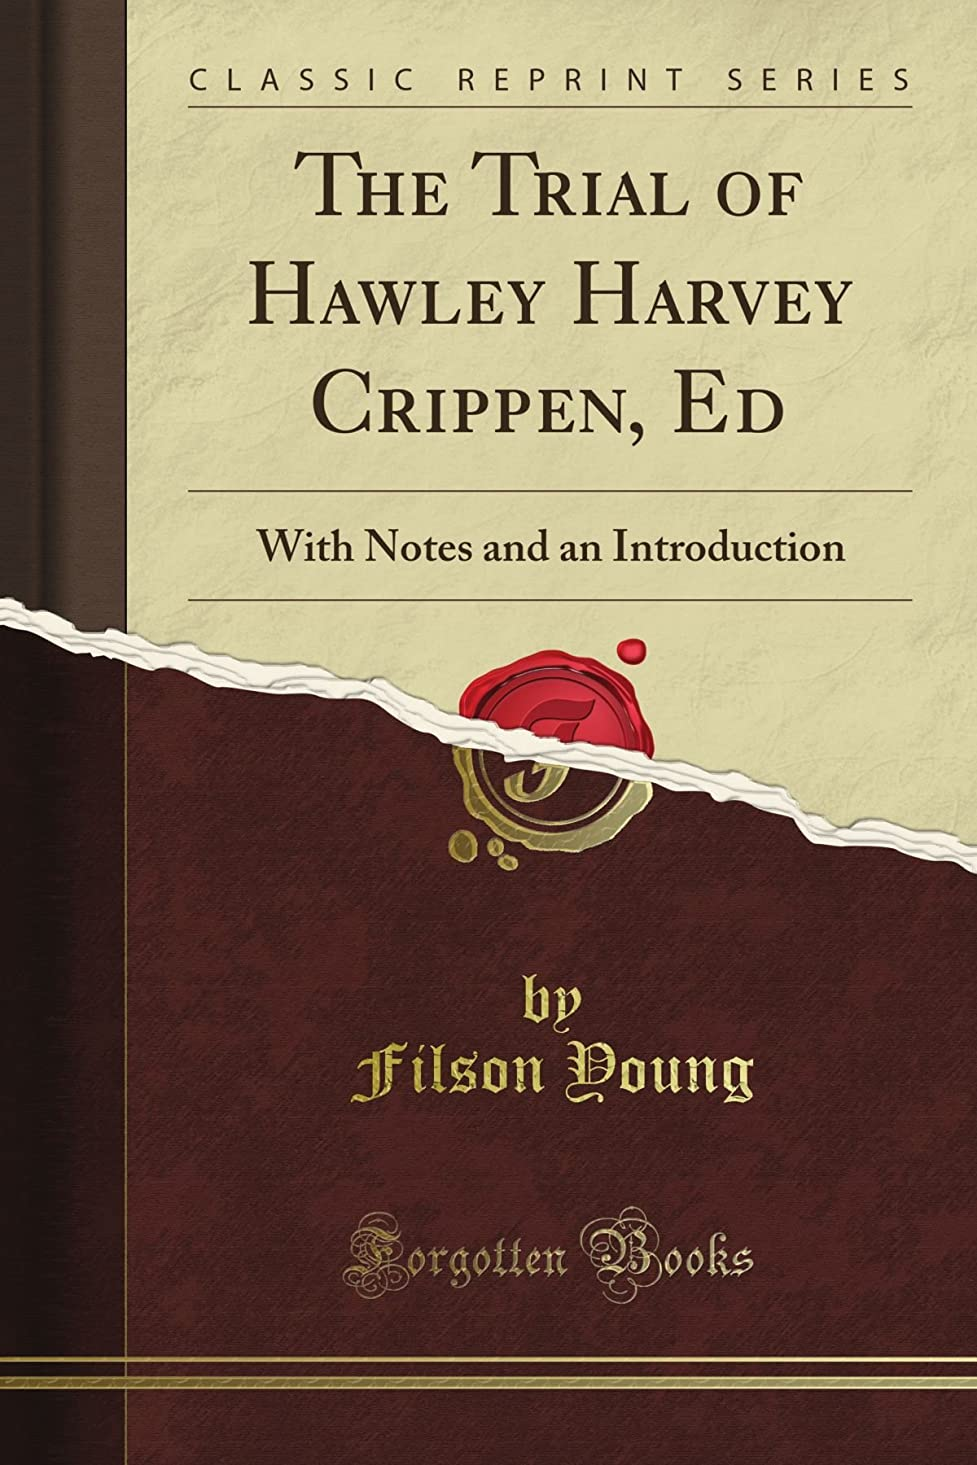 エスカレート粘液明らかにThe Trial of Hawley Harvey Crippen, Ed: With Notes and an Introduction (Classic Reprint)